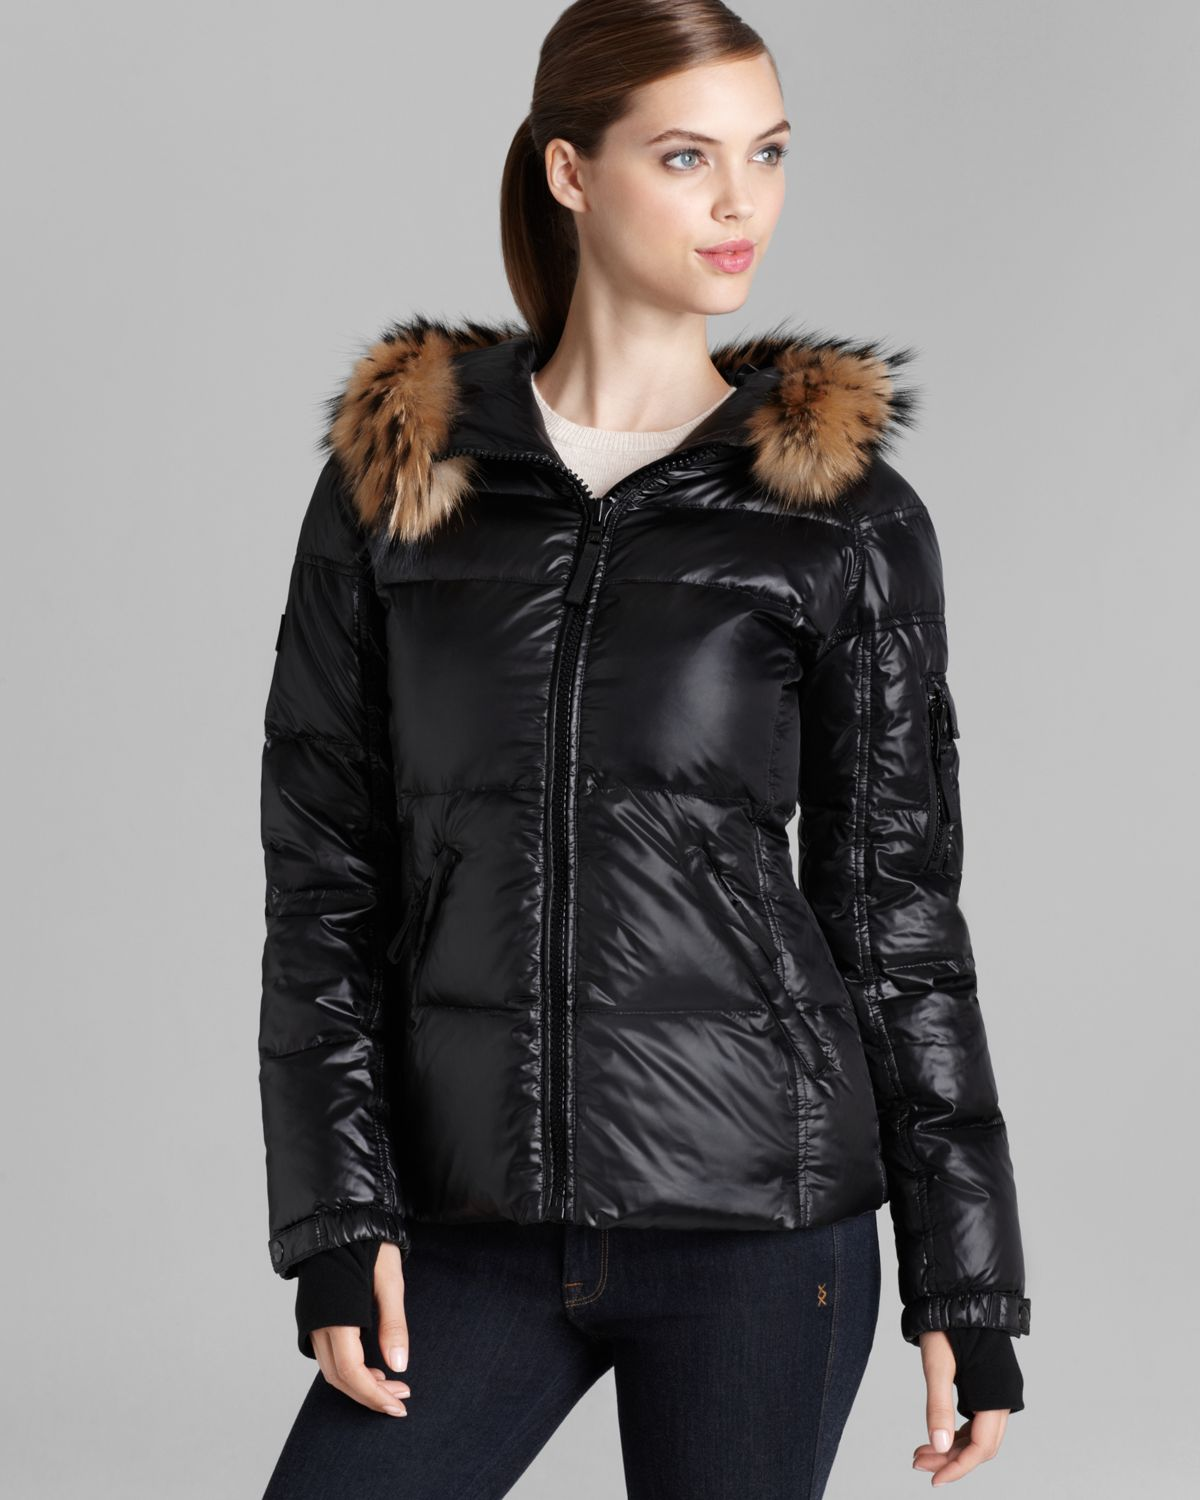 e29dc95fd90a Lyst - Sam. Blake Fur Trimmed Down Jacket in Black